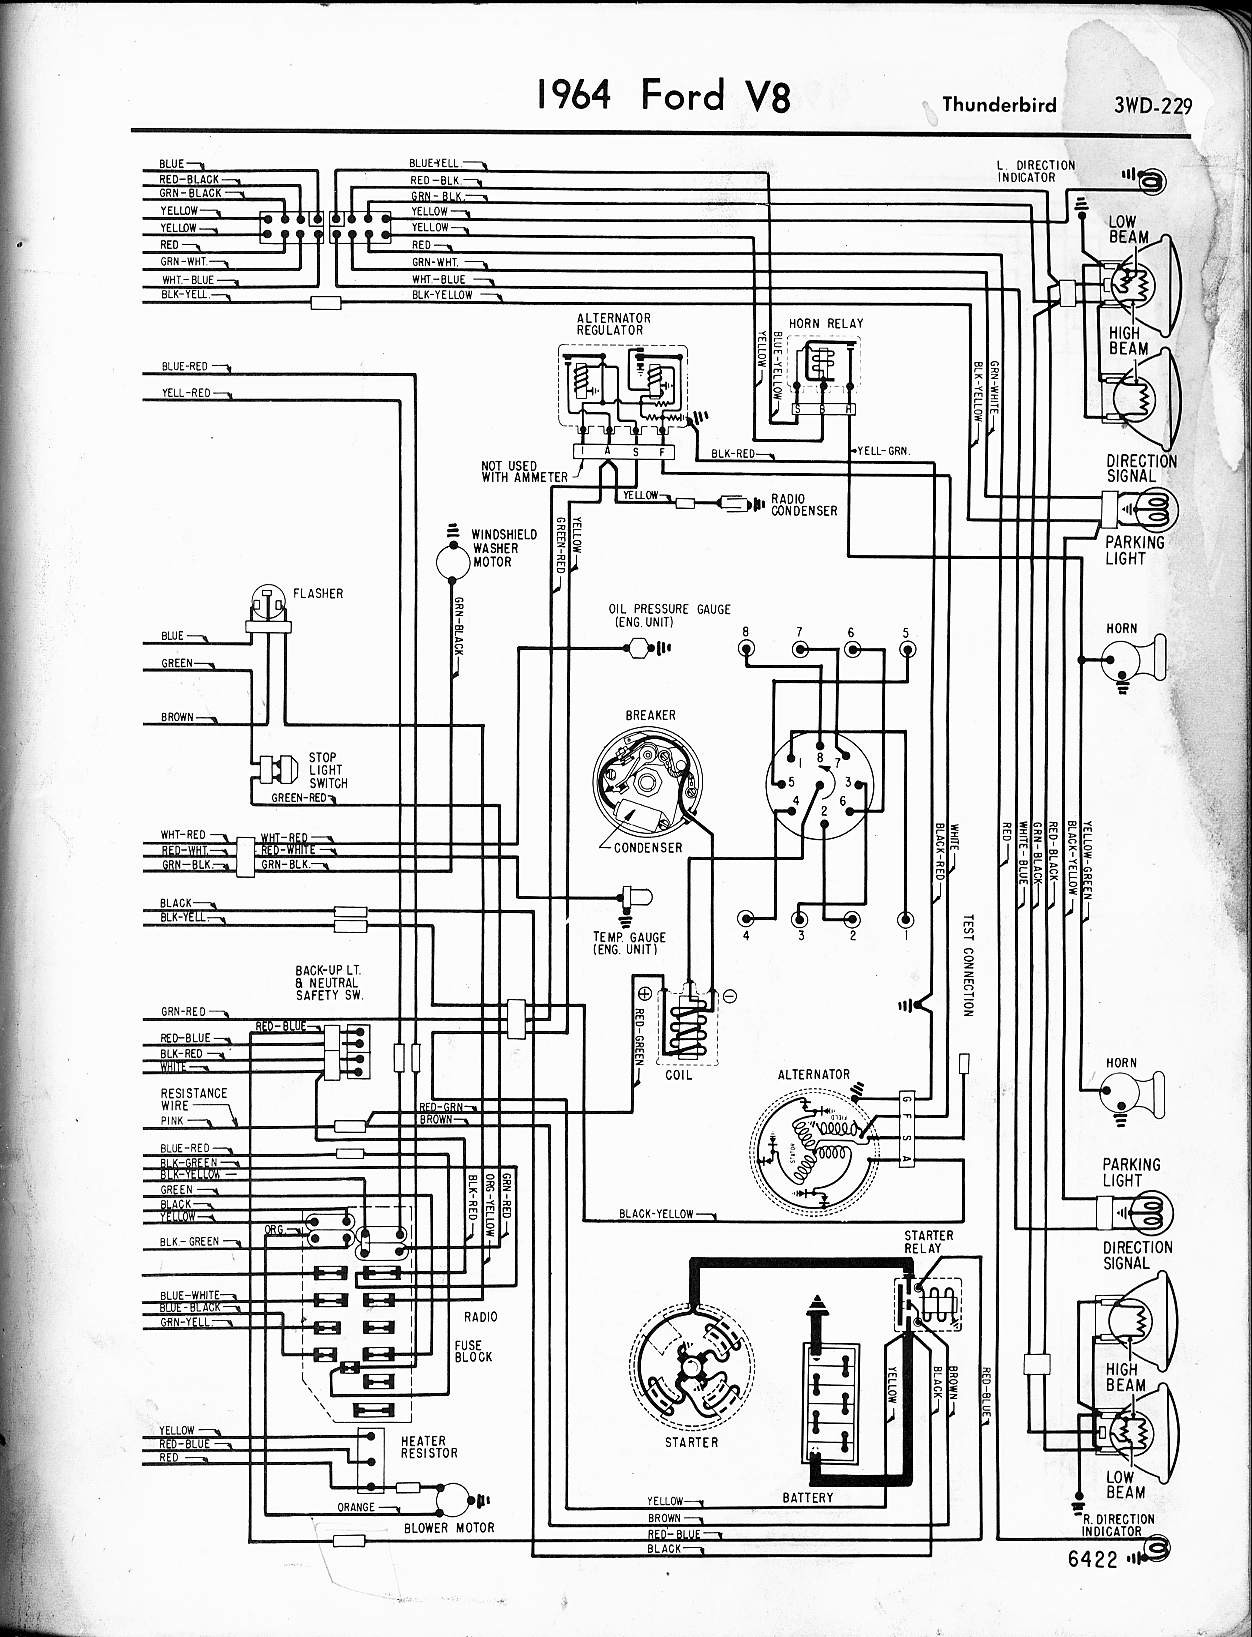 Wireing Diagram for 1988 Club Car 57 65 ford Wiring Diagrams Of Wireing Diagram for 1988 Club Car